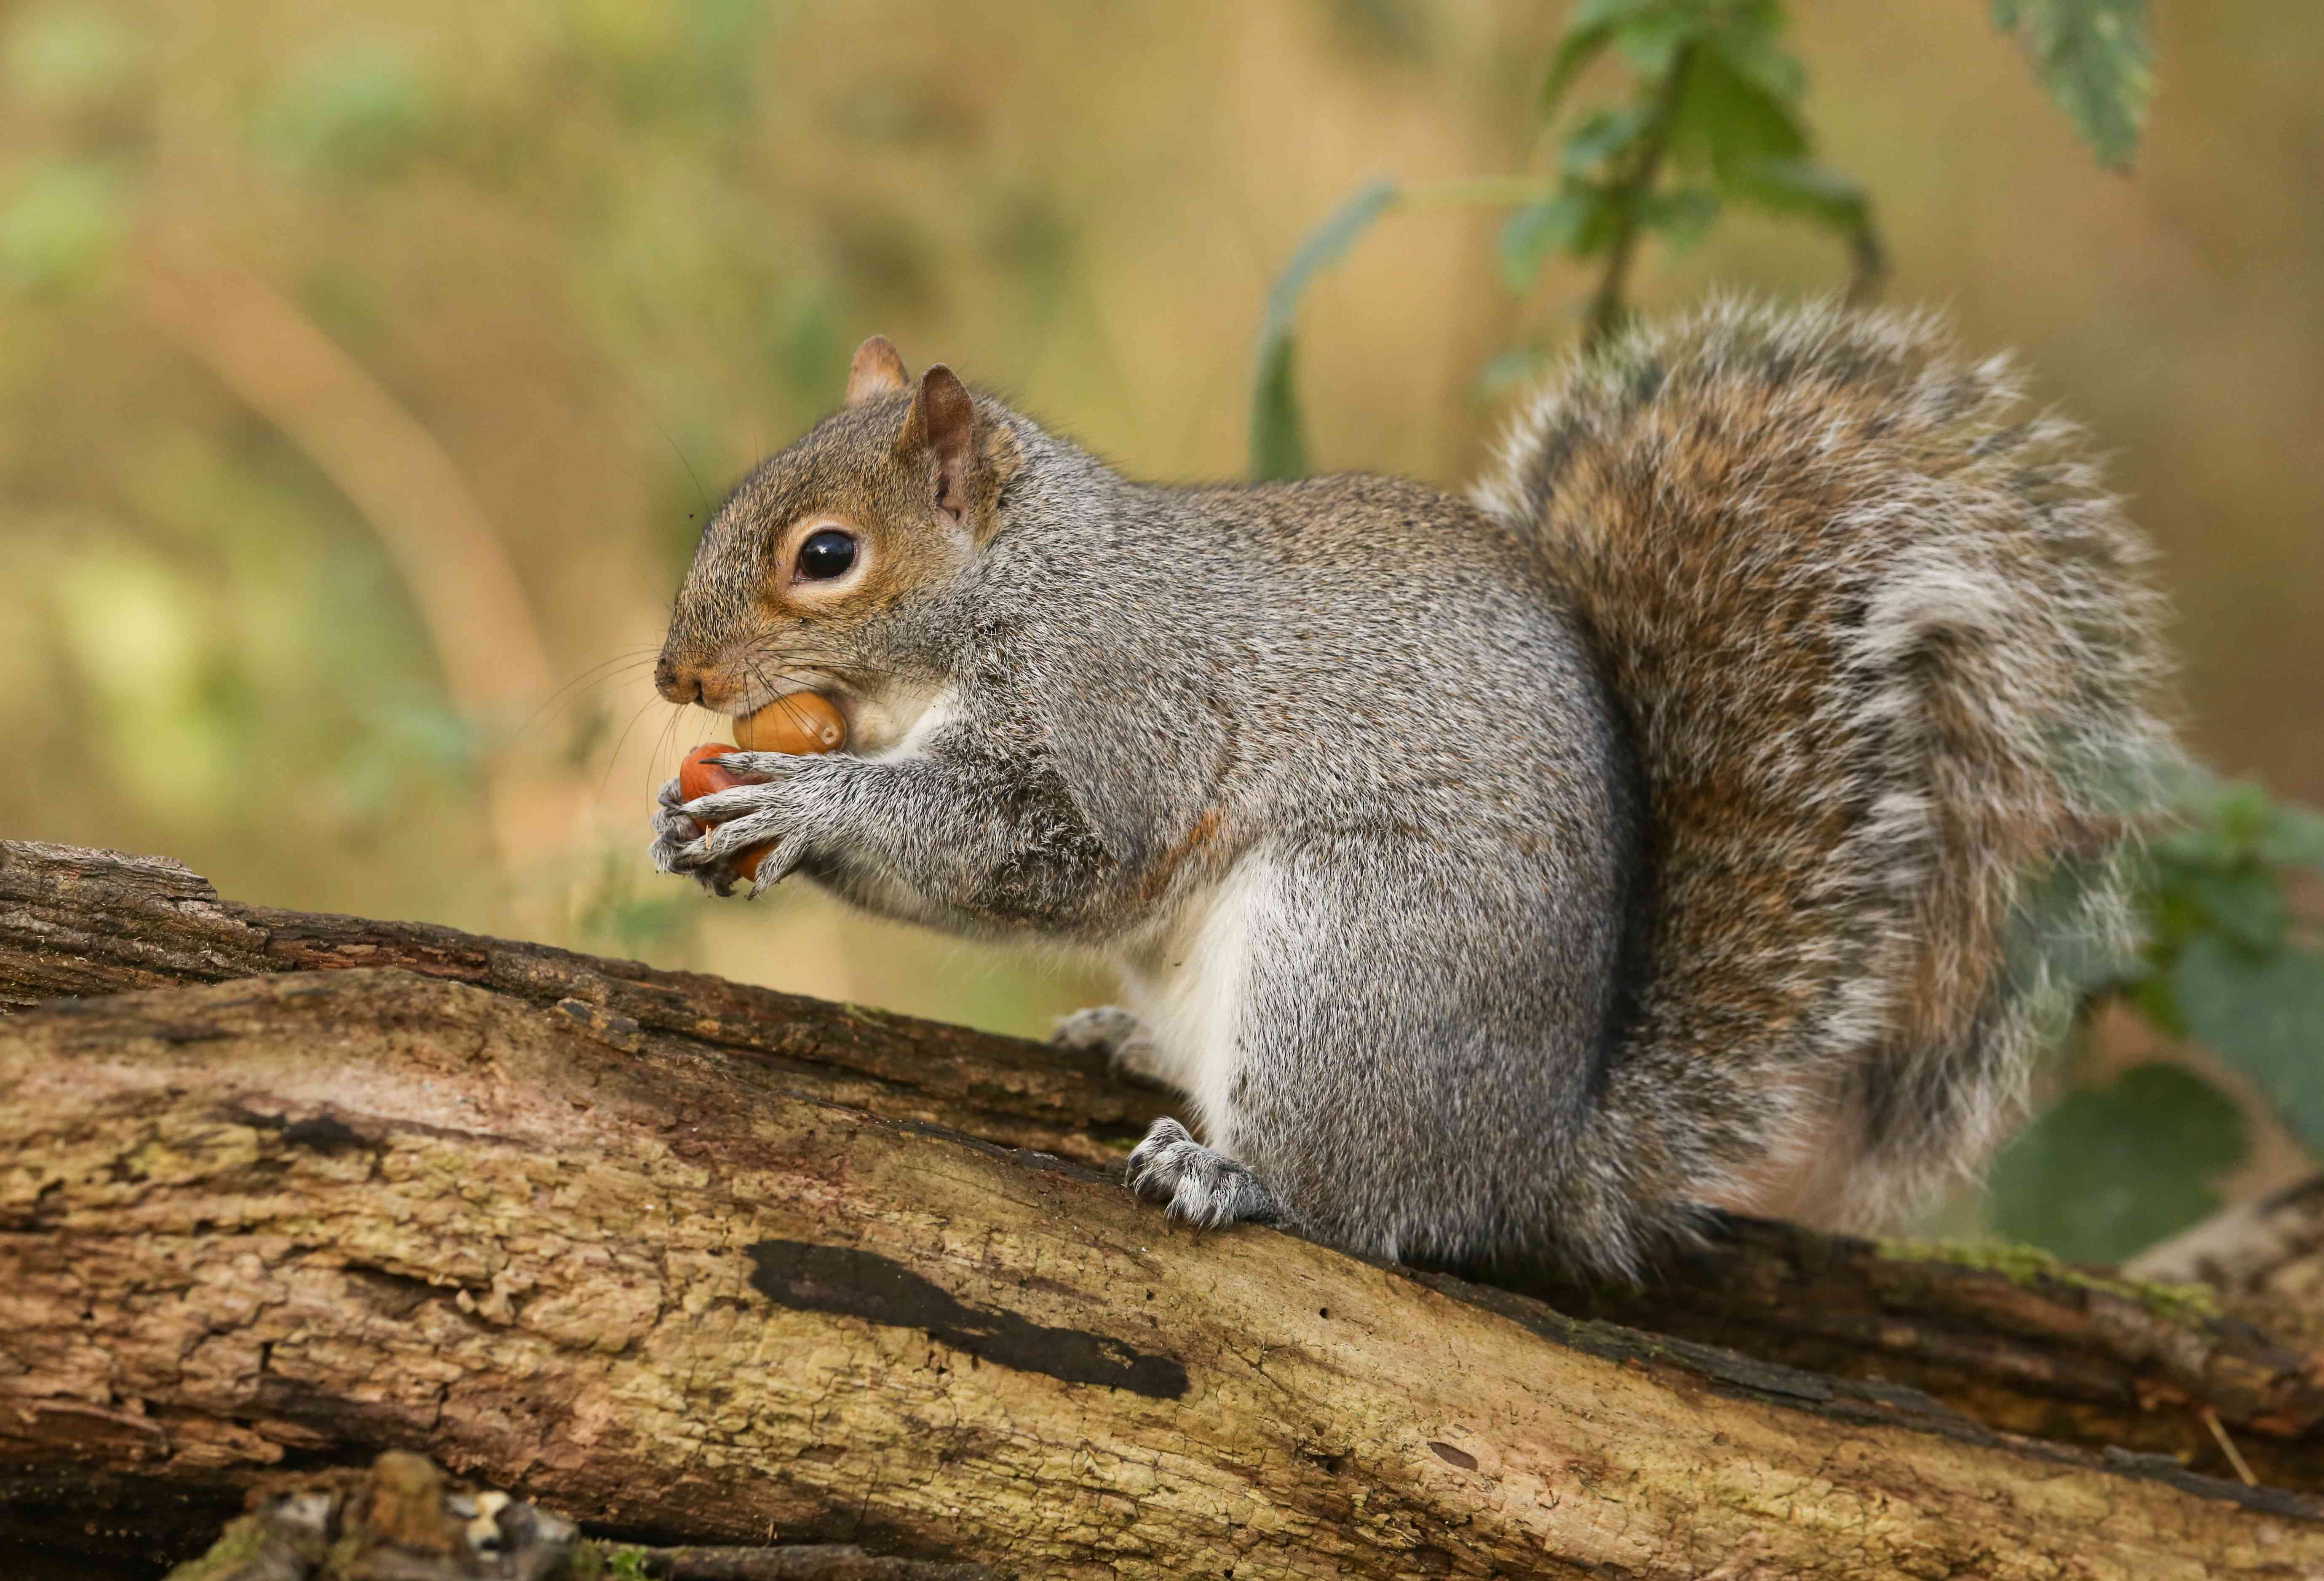 A humorous shot of a cute Grey Squirrel (Scirius carolinensis) trying to carry two nuts one in its mouth and one in its paws sitting on a log.